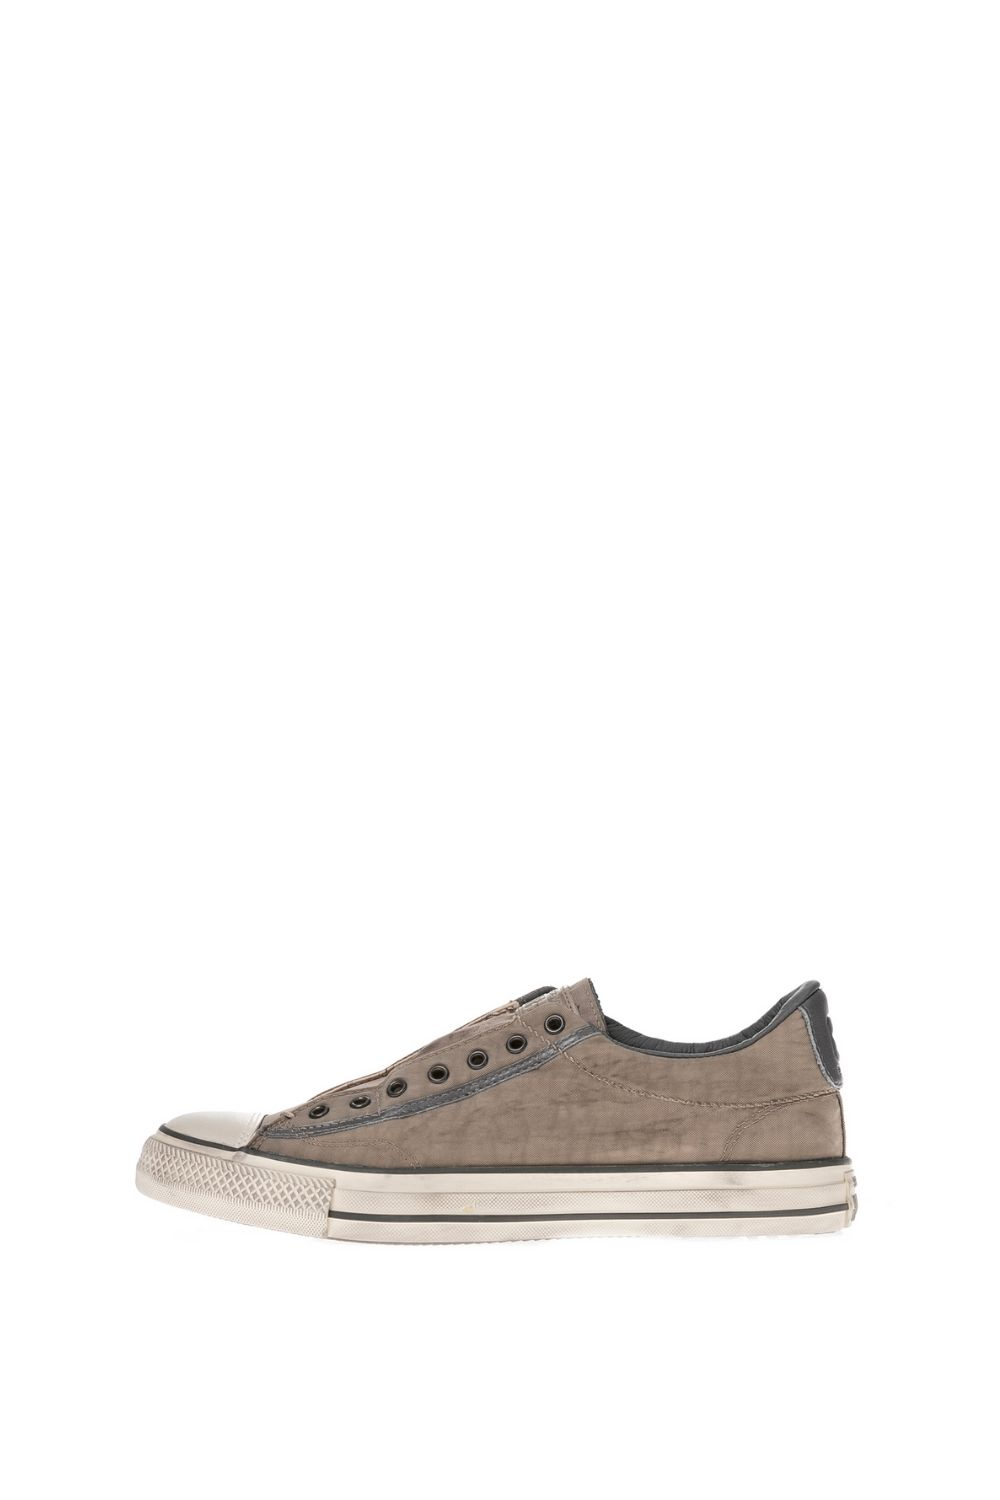 CONVERSE – Unisex sneakers CONVERSE Chuck Taylor All Star Vintage γκρι